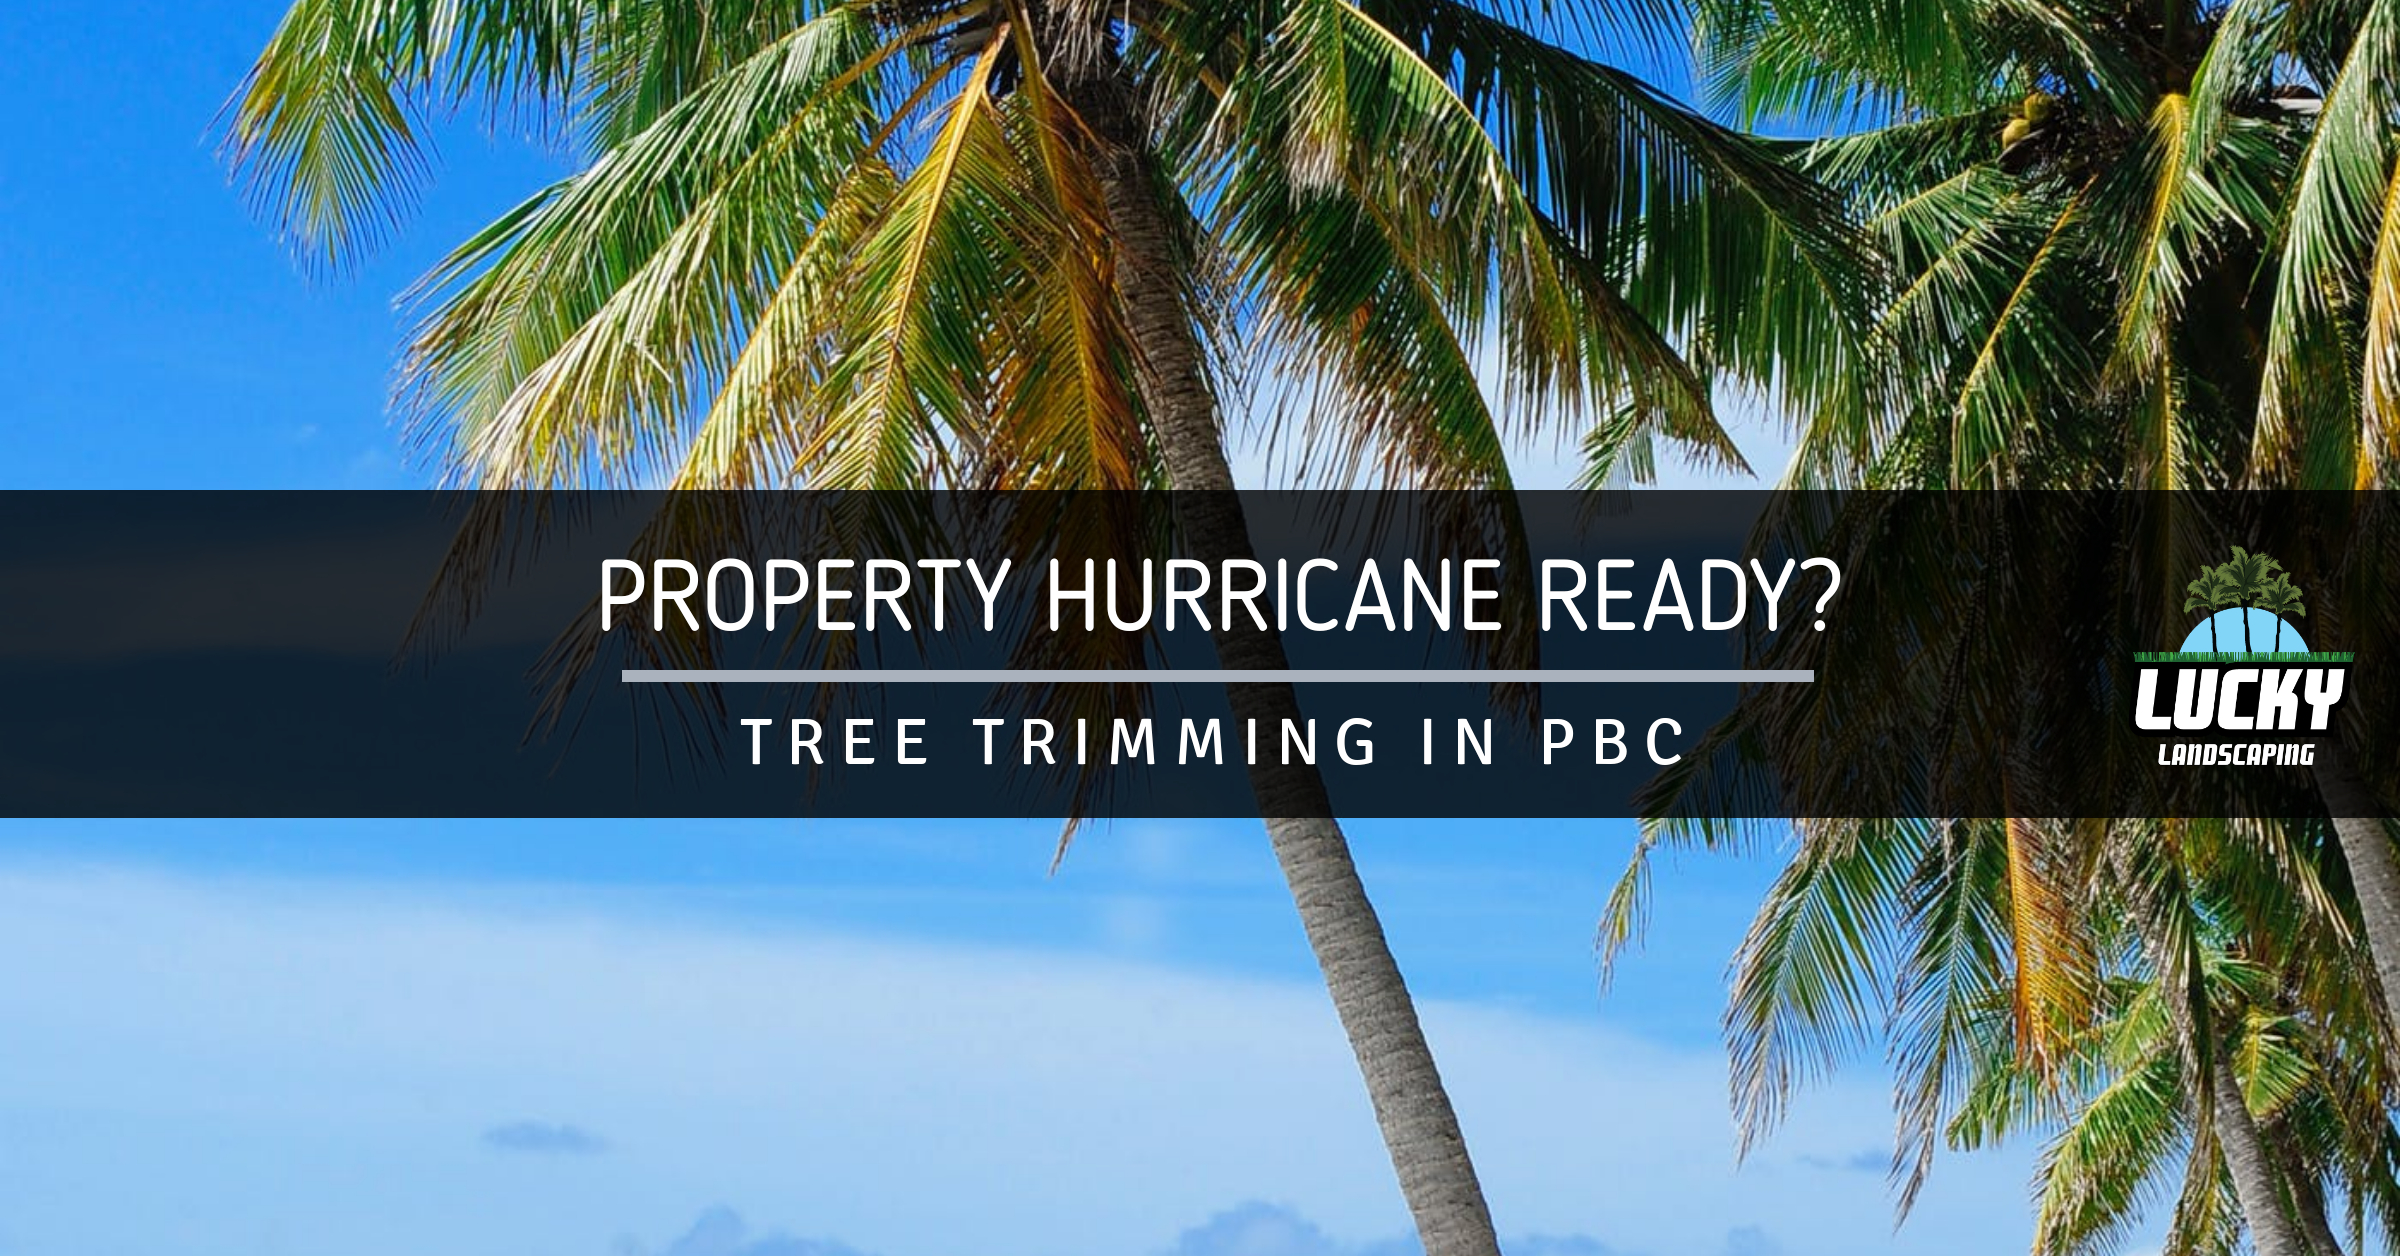 Palm Beach County Tree Trimming